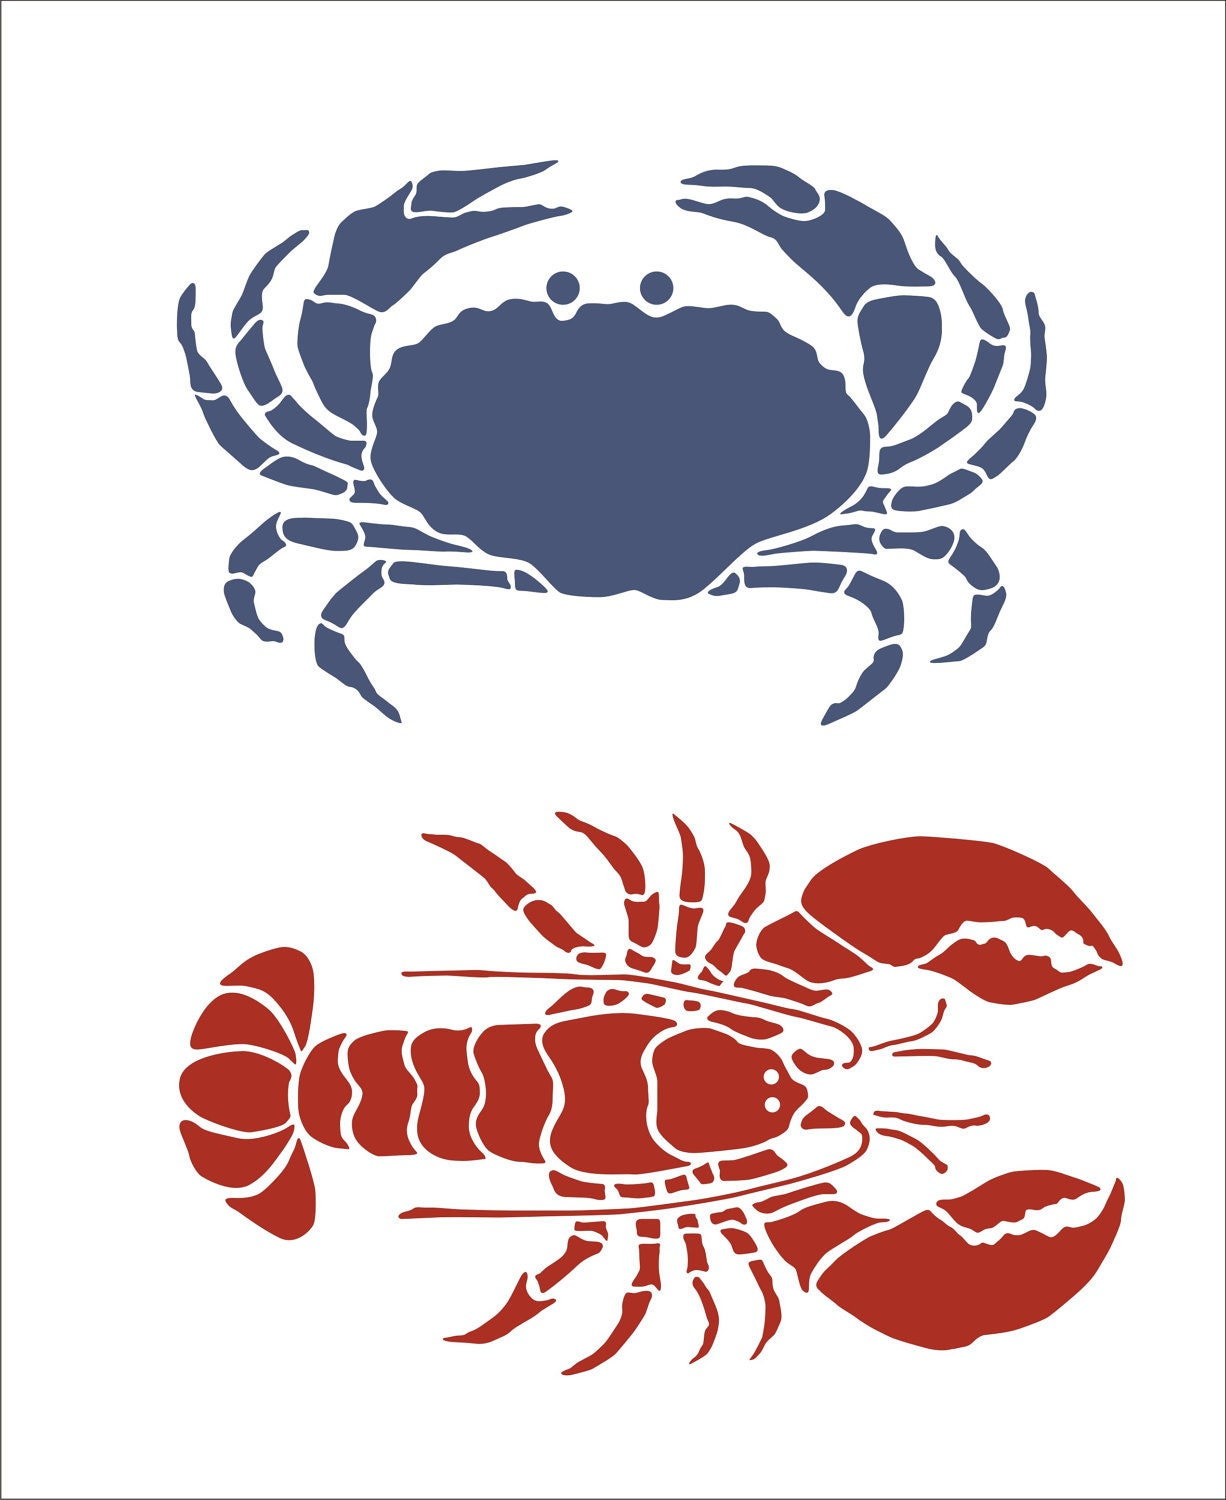 King Crab Images King Crab Stencil Cute